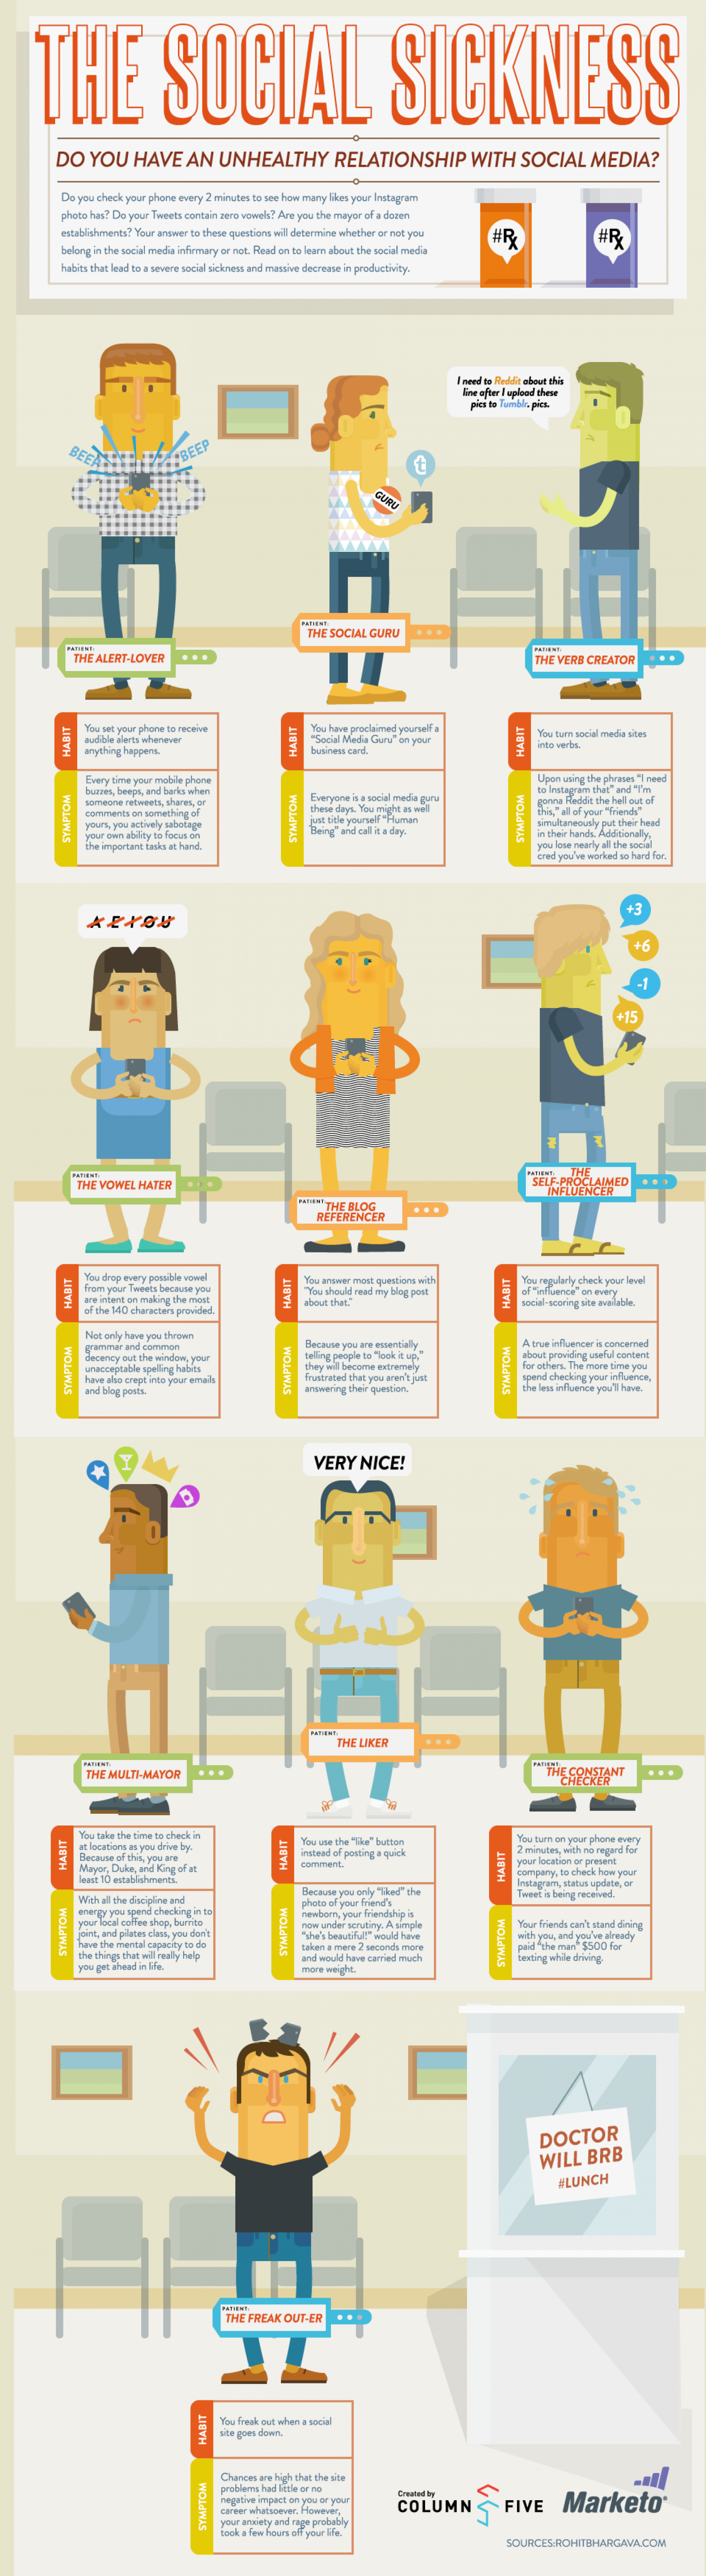 The Social Sickness Infographic